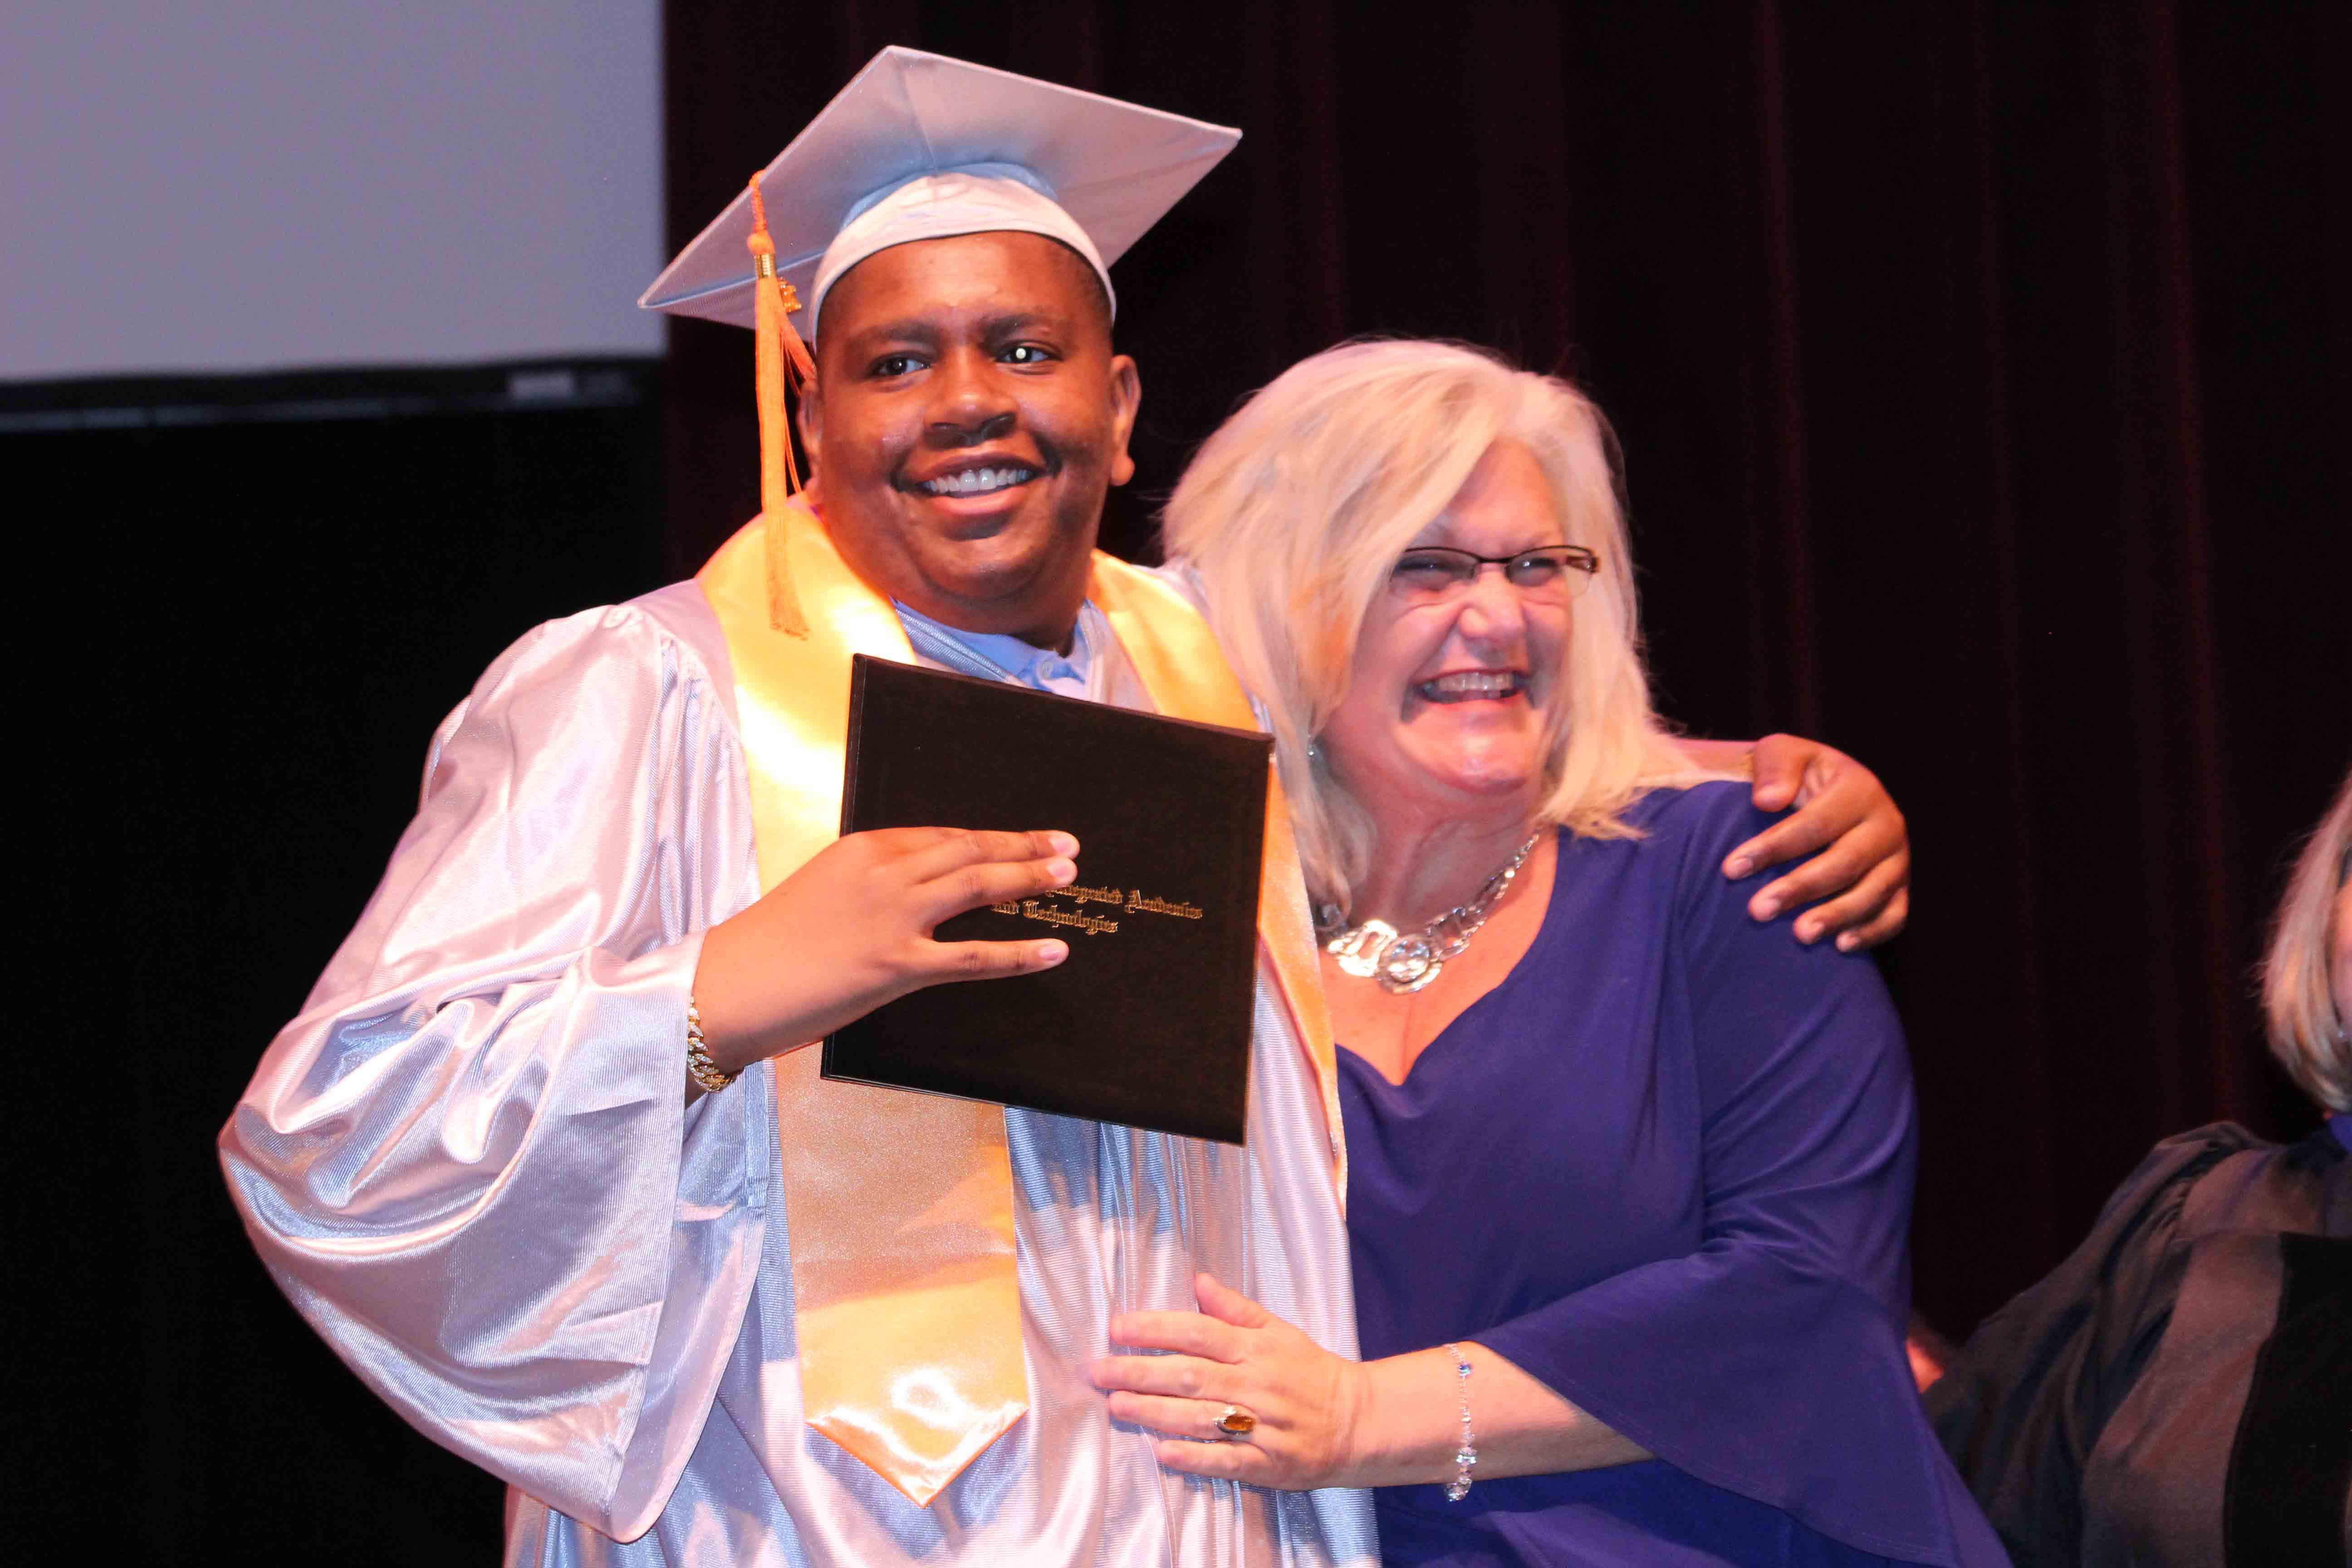 Davion Only-Going posing with his mom, Connie Going, after receiving his high school diploma